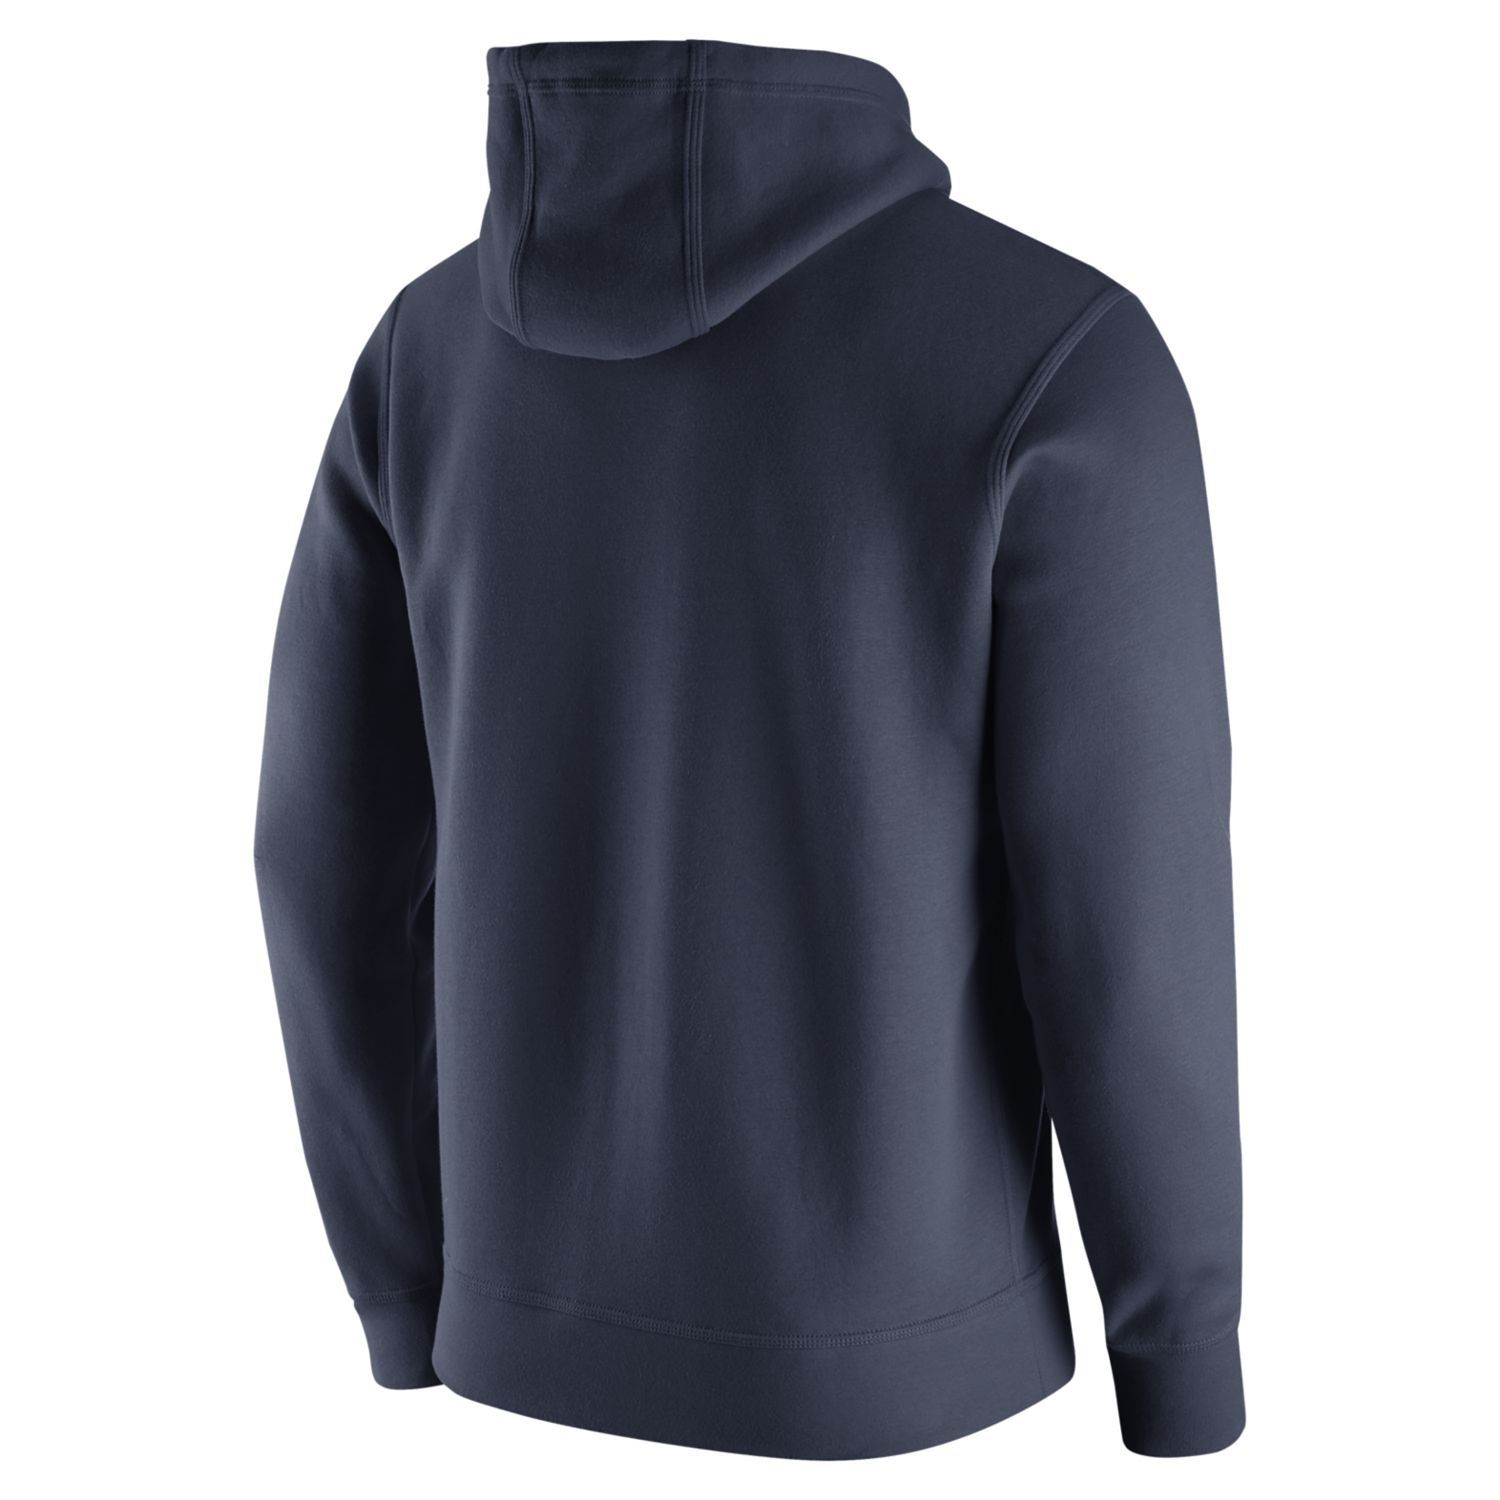 84b99570 Men's Nike Hoodies | Kohl's